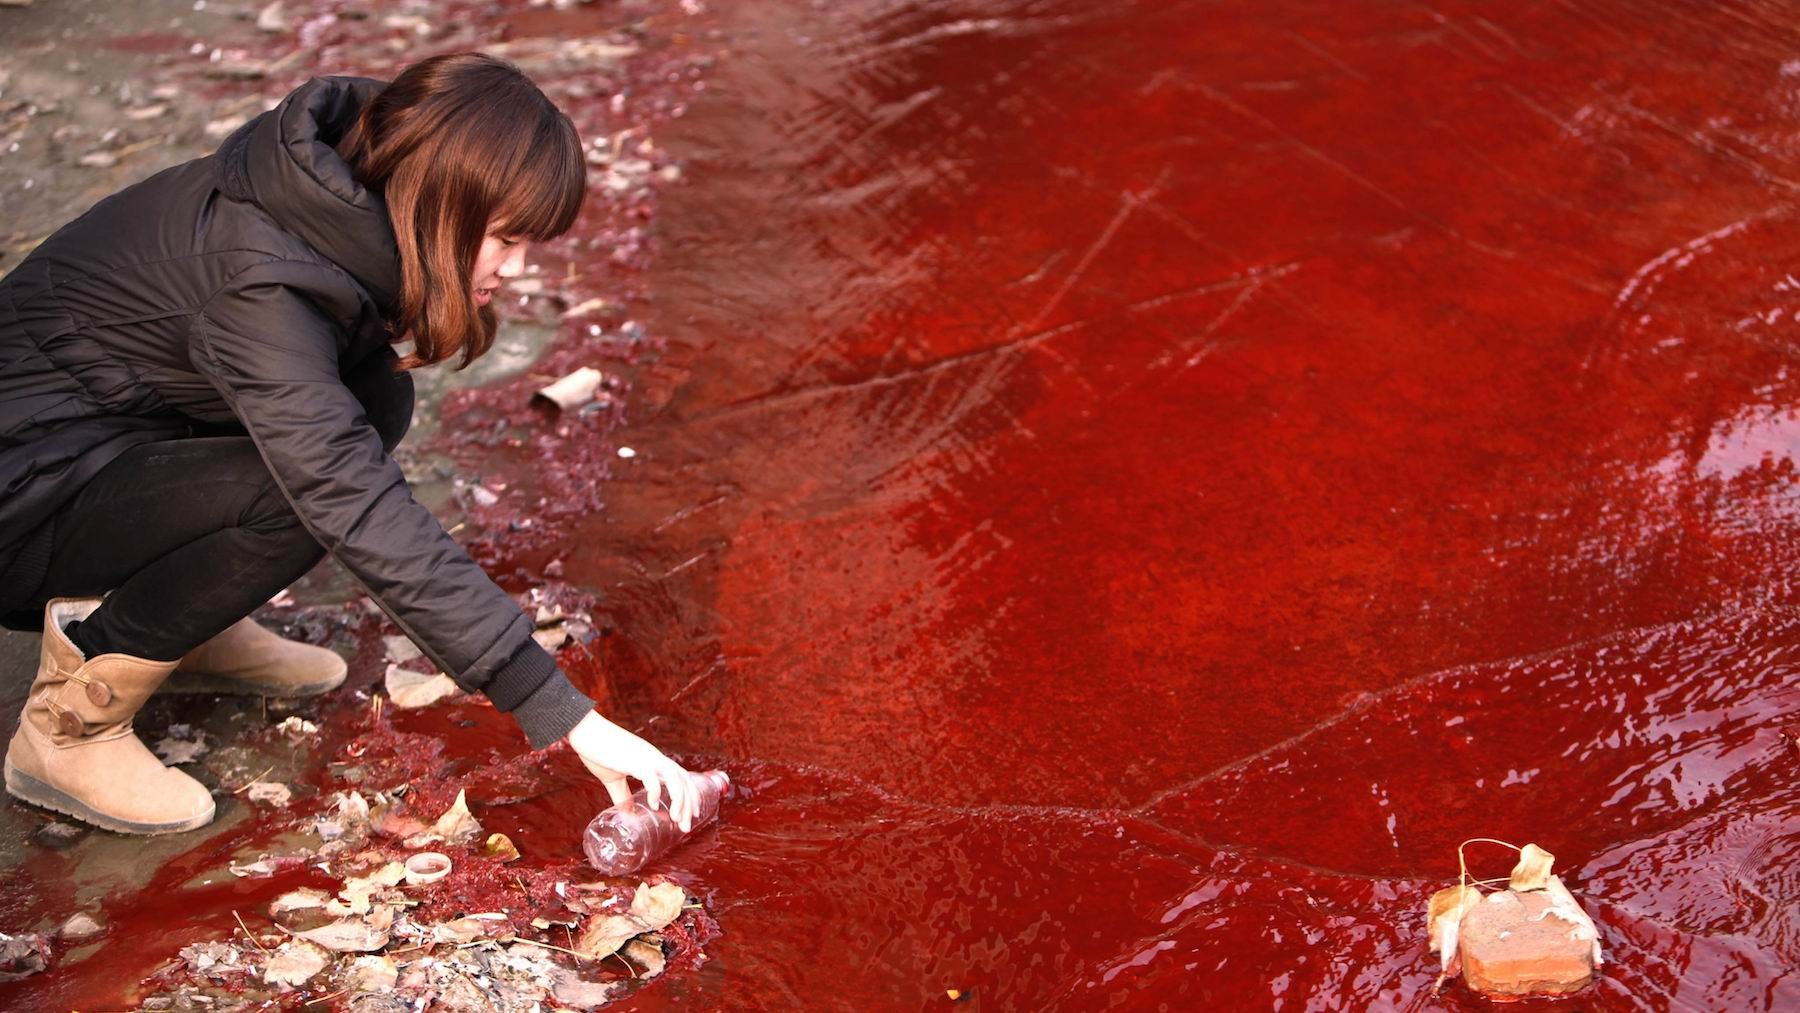 China's Luoyang¡¯s Jian River becomes contaminated with dye from discharge of untreated wastewater into storm water pipes | Source: Natural Resources Defense Council/Zhang Xiaoli/ChinaFotoPress